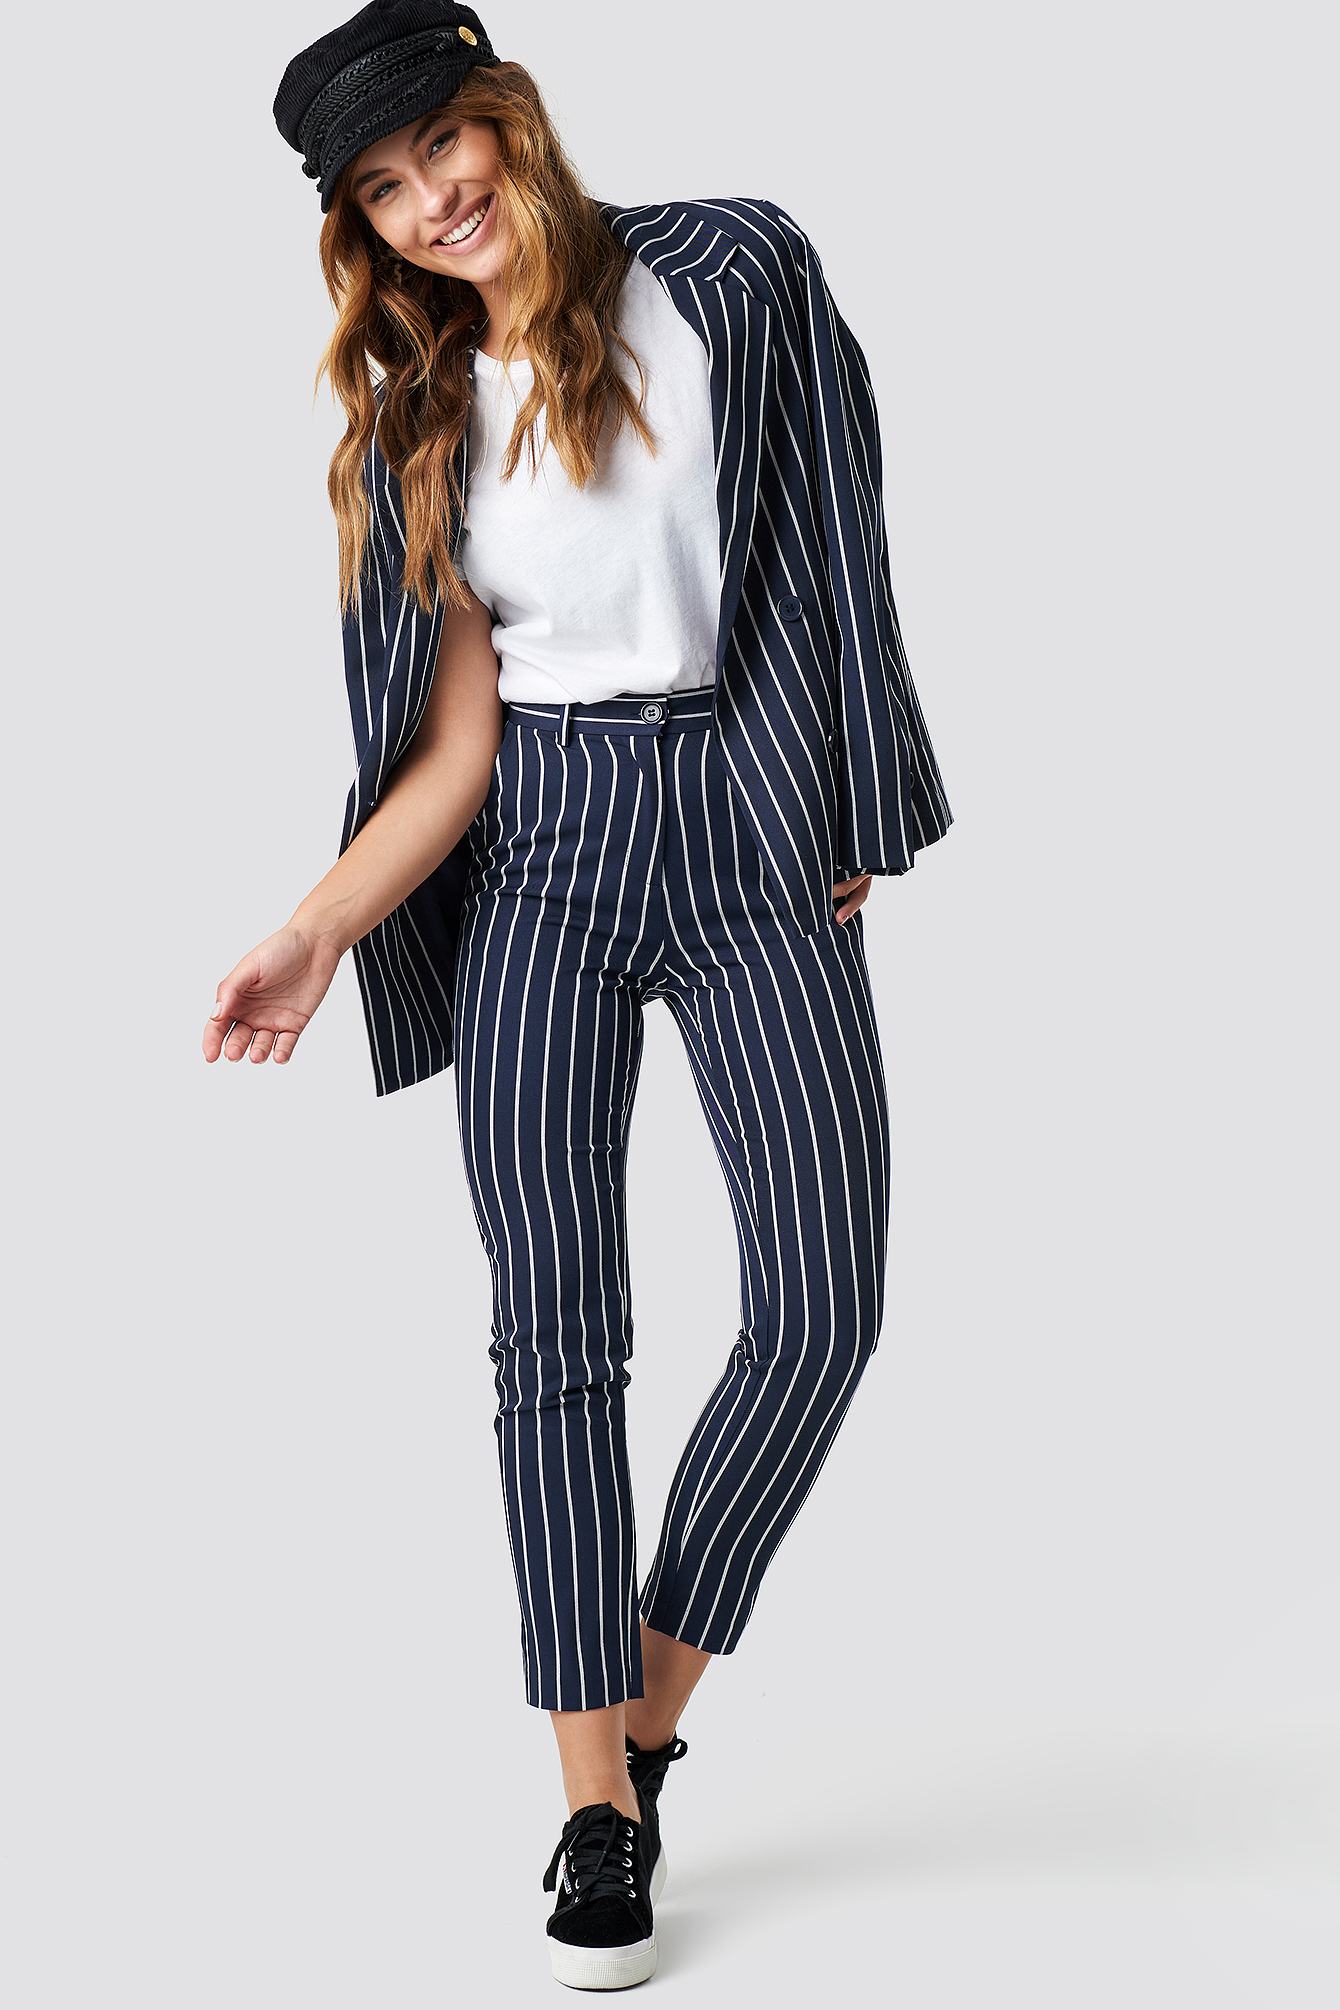 na-kd classic -  Navy Striped Suit Pants - Blue